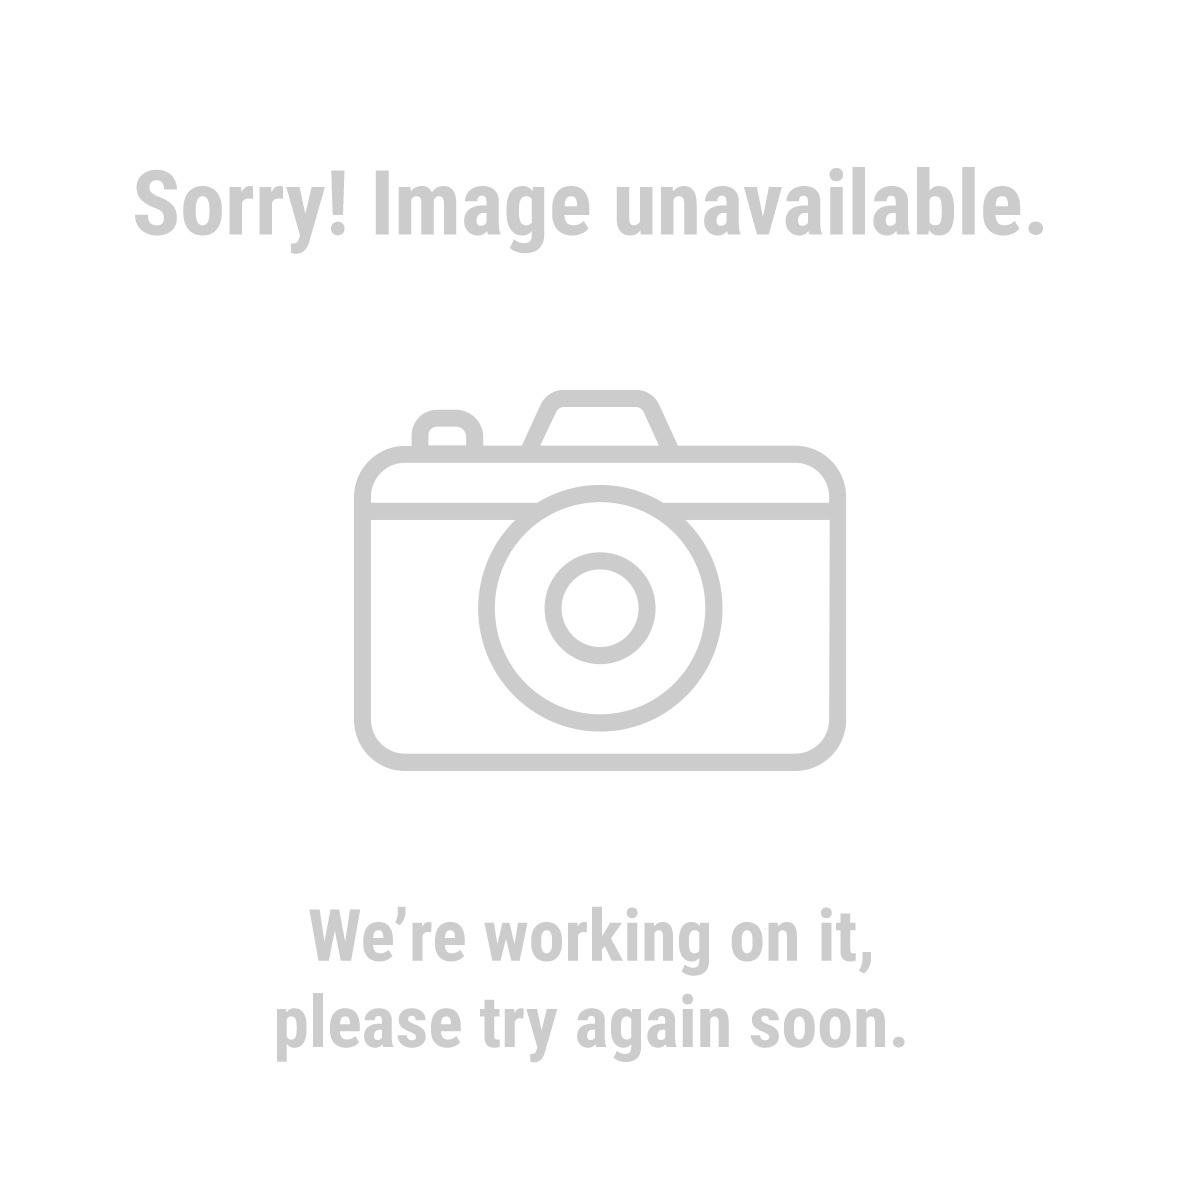 11 Piece Metric Quick-Change Nut Driver Set